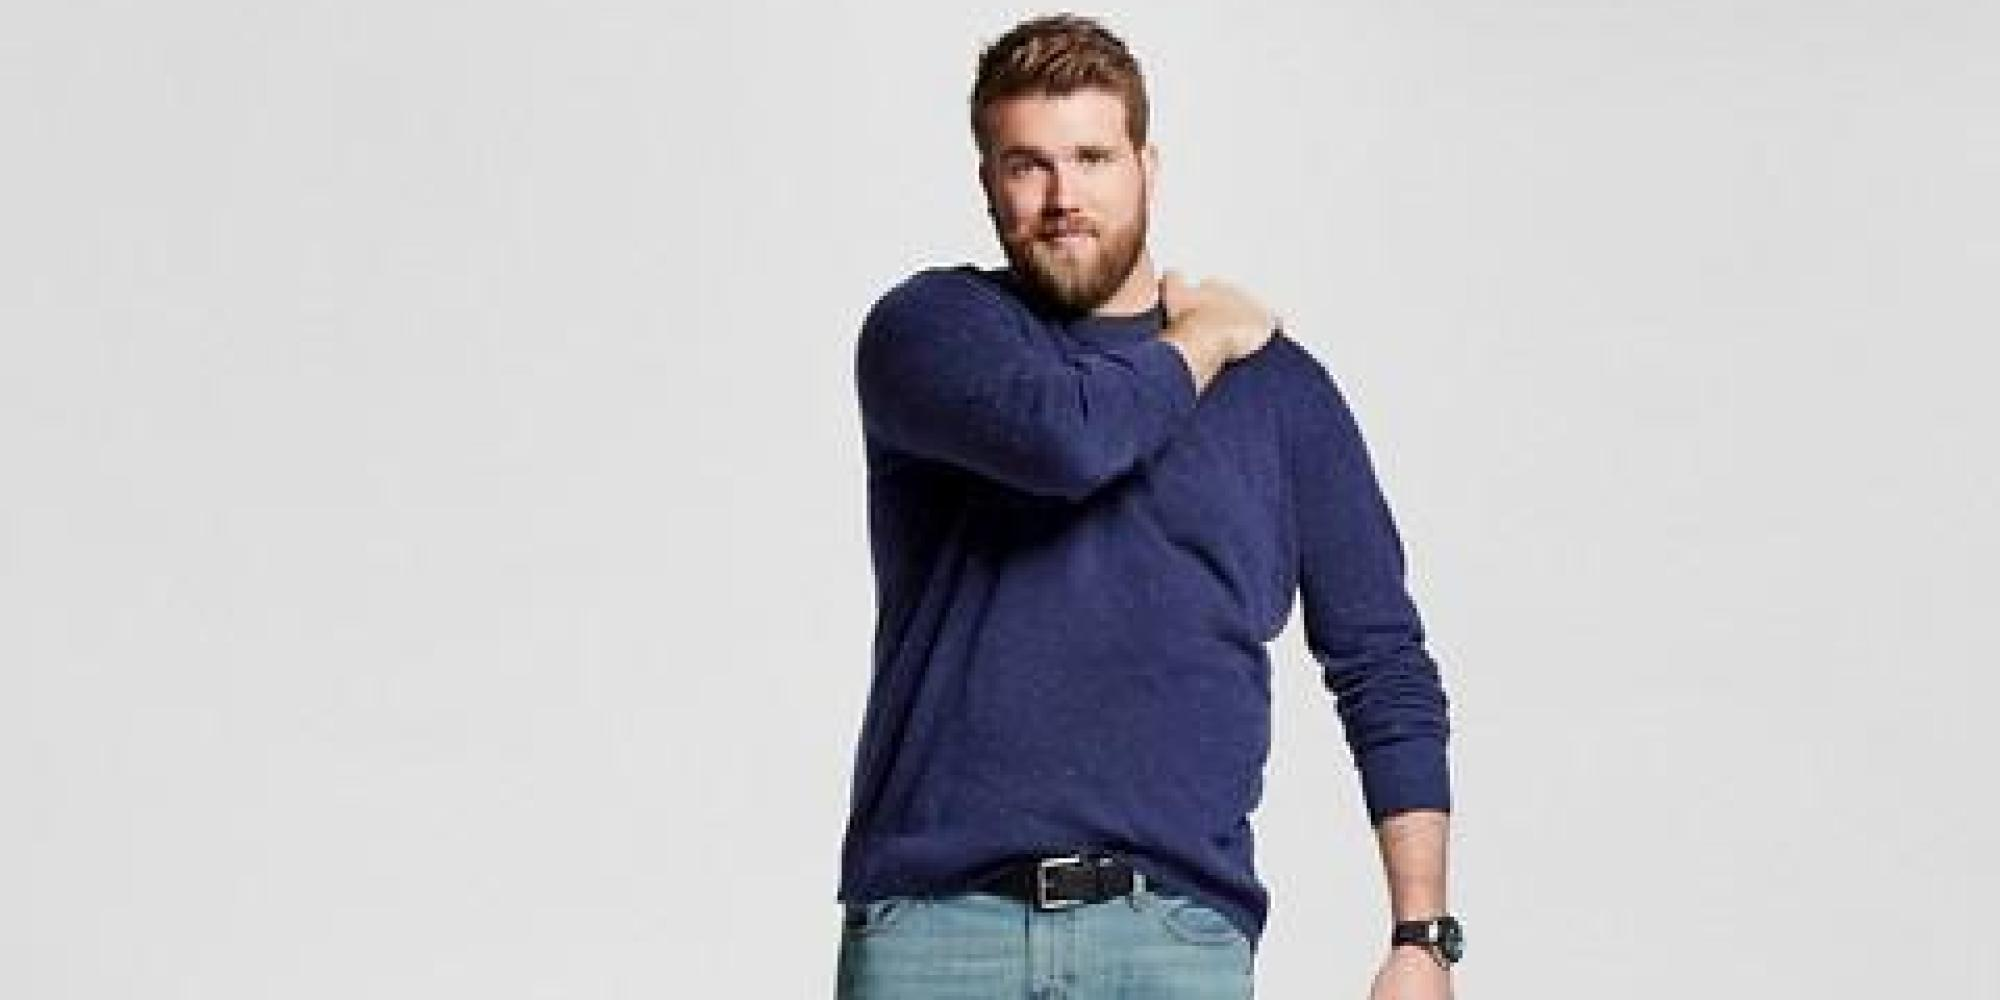 Plus Size Male Models Why Are These Men Missing From The